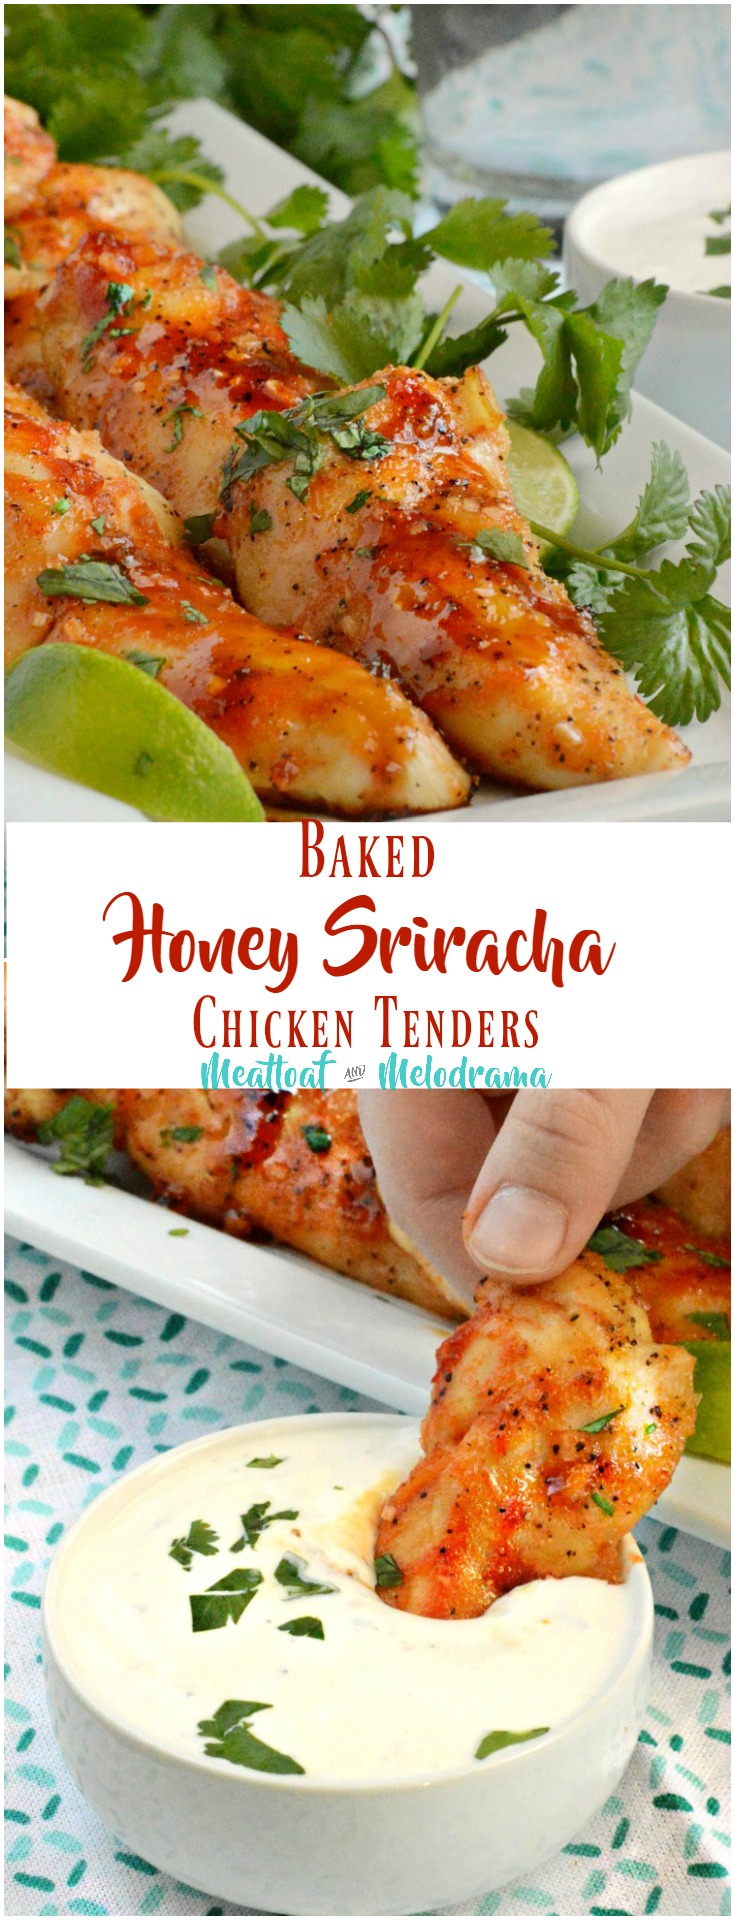 Aug 15, · Crispy chicken tenders are made with sriracha sauce right in the batter and served with a cool, sweet honey sour cream sauce. For the brave ones, drizzle some more sriracha sauce on top of cooked chicken smolinwebsite.gags: